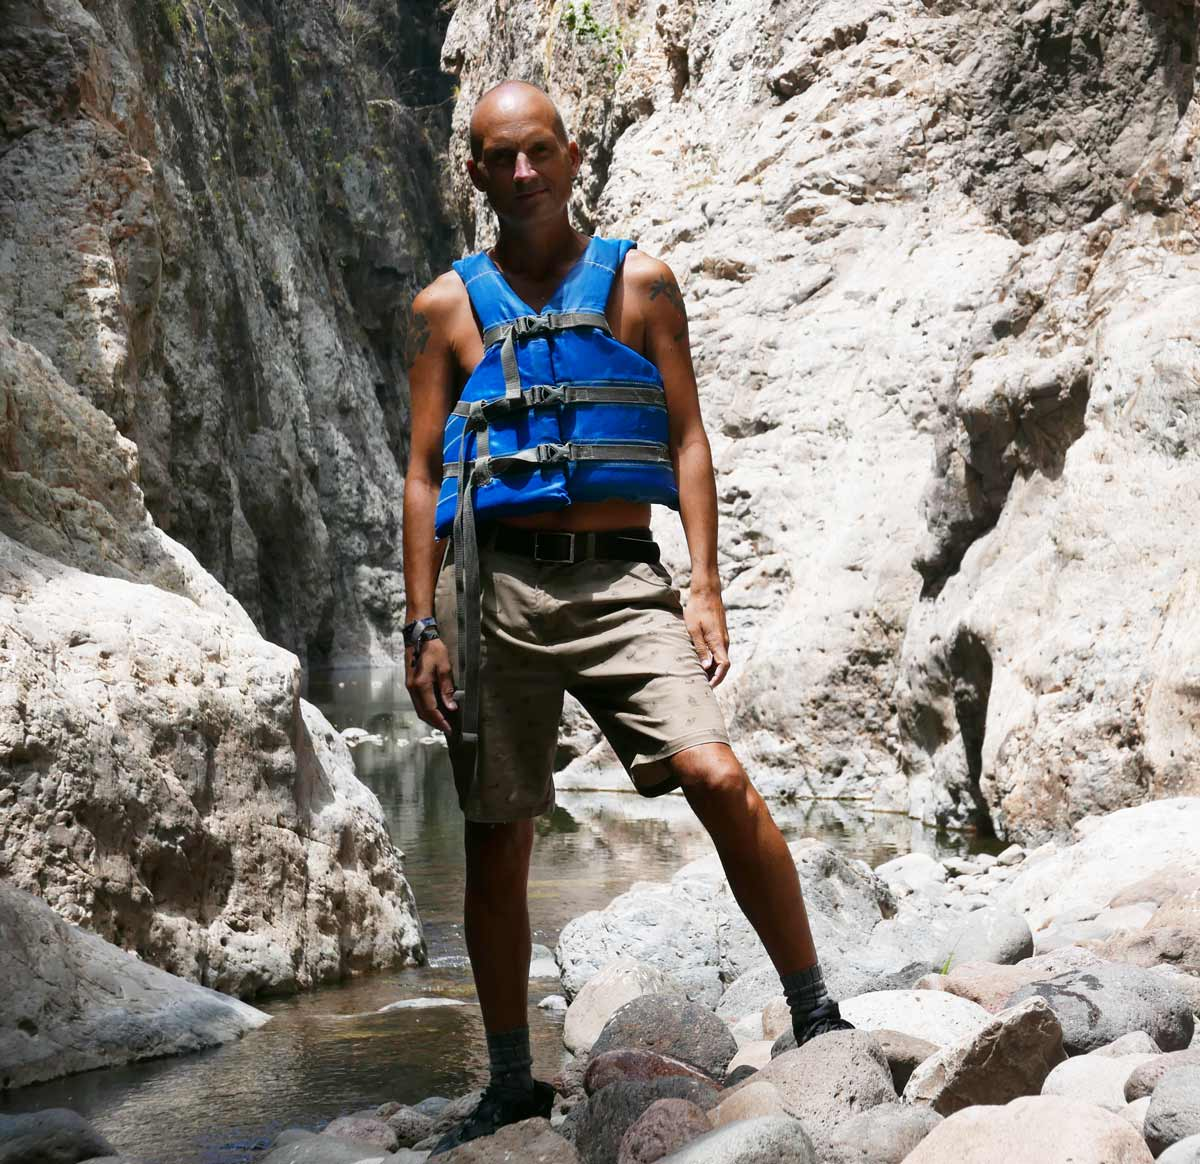 Yours truly in life vest in the middle part of Somoto canyon